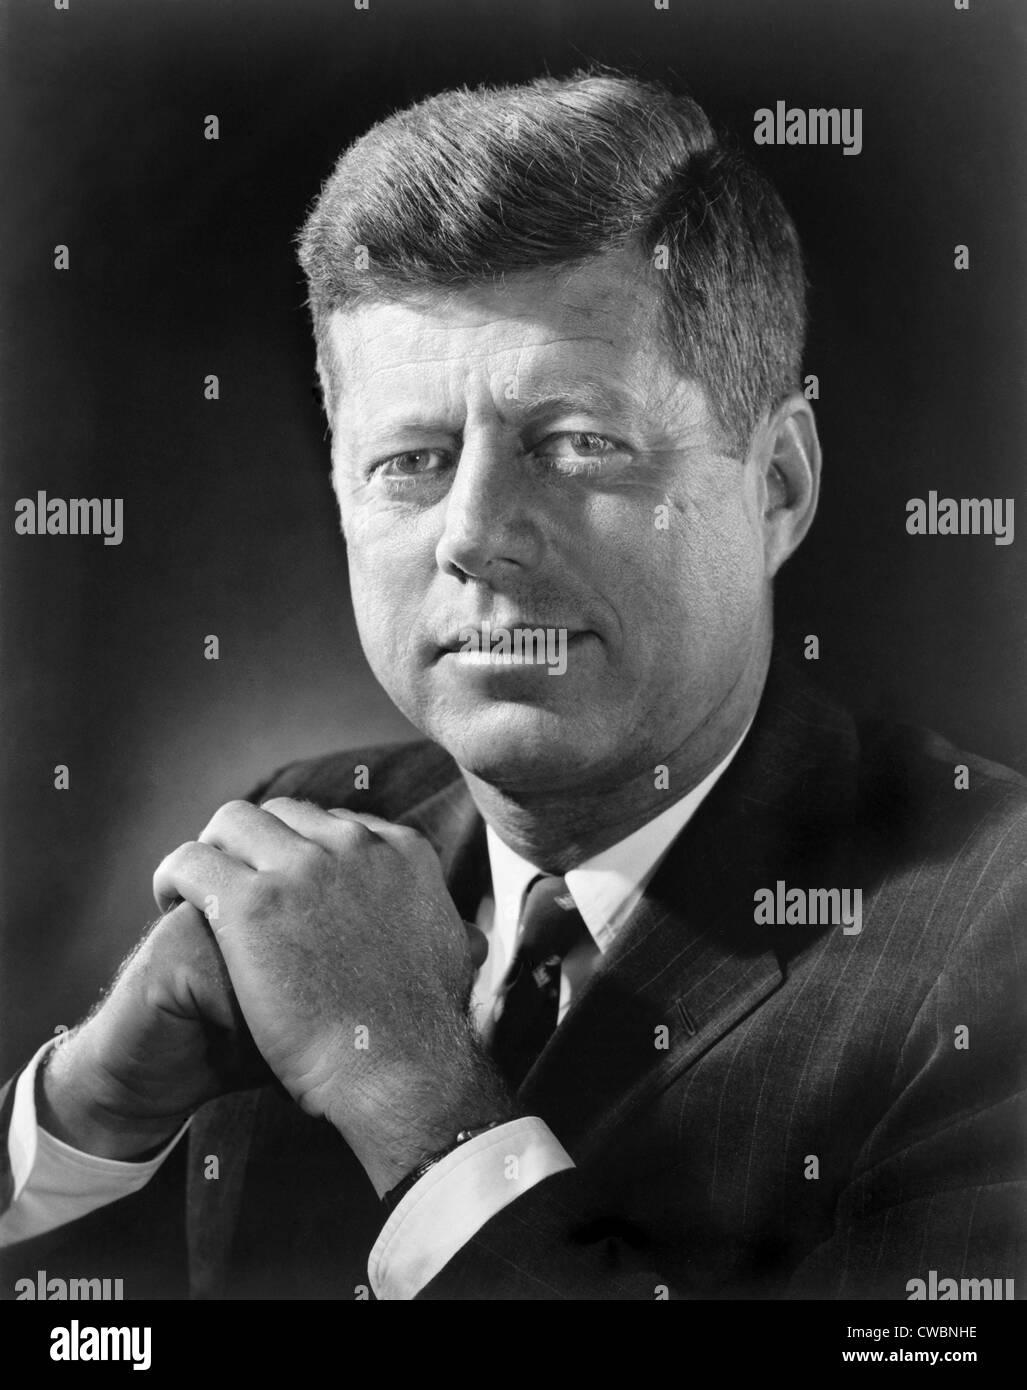 president john f kennedy One was his visit to the white house to meet president john f kennedy, as a  boys nation senator the other was listening to martin luther king's 1963 i have  a.